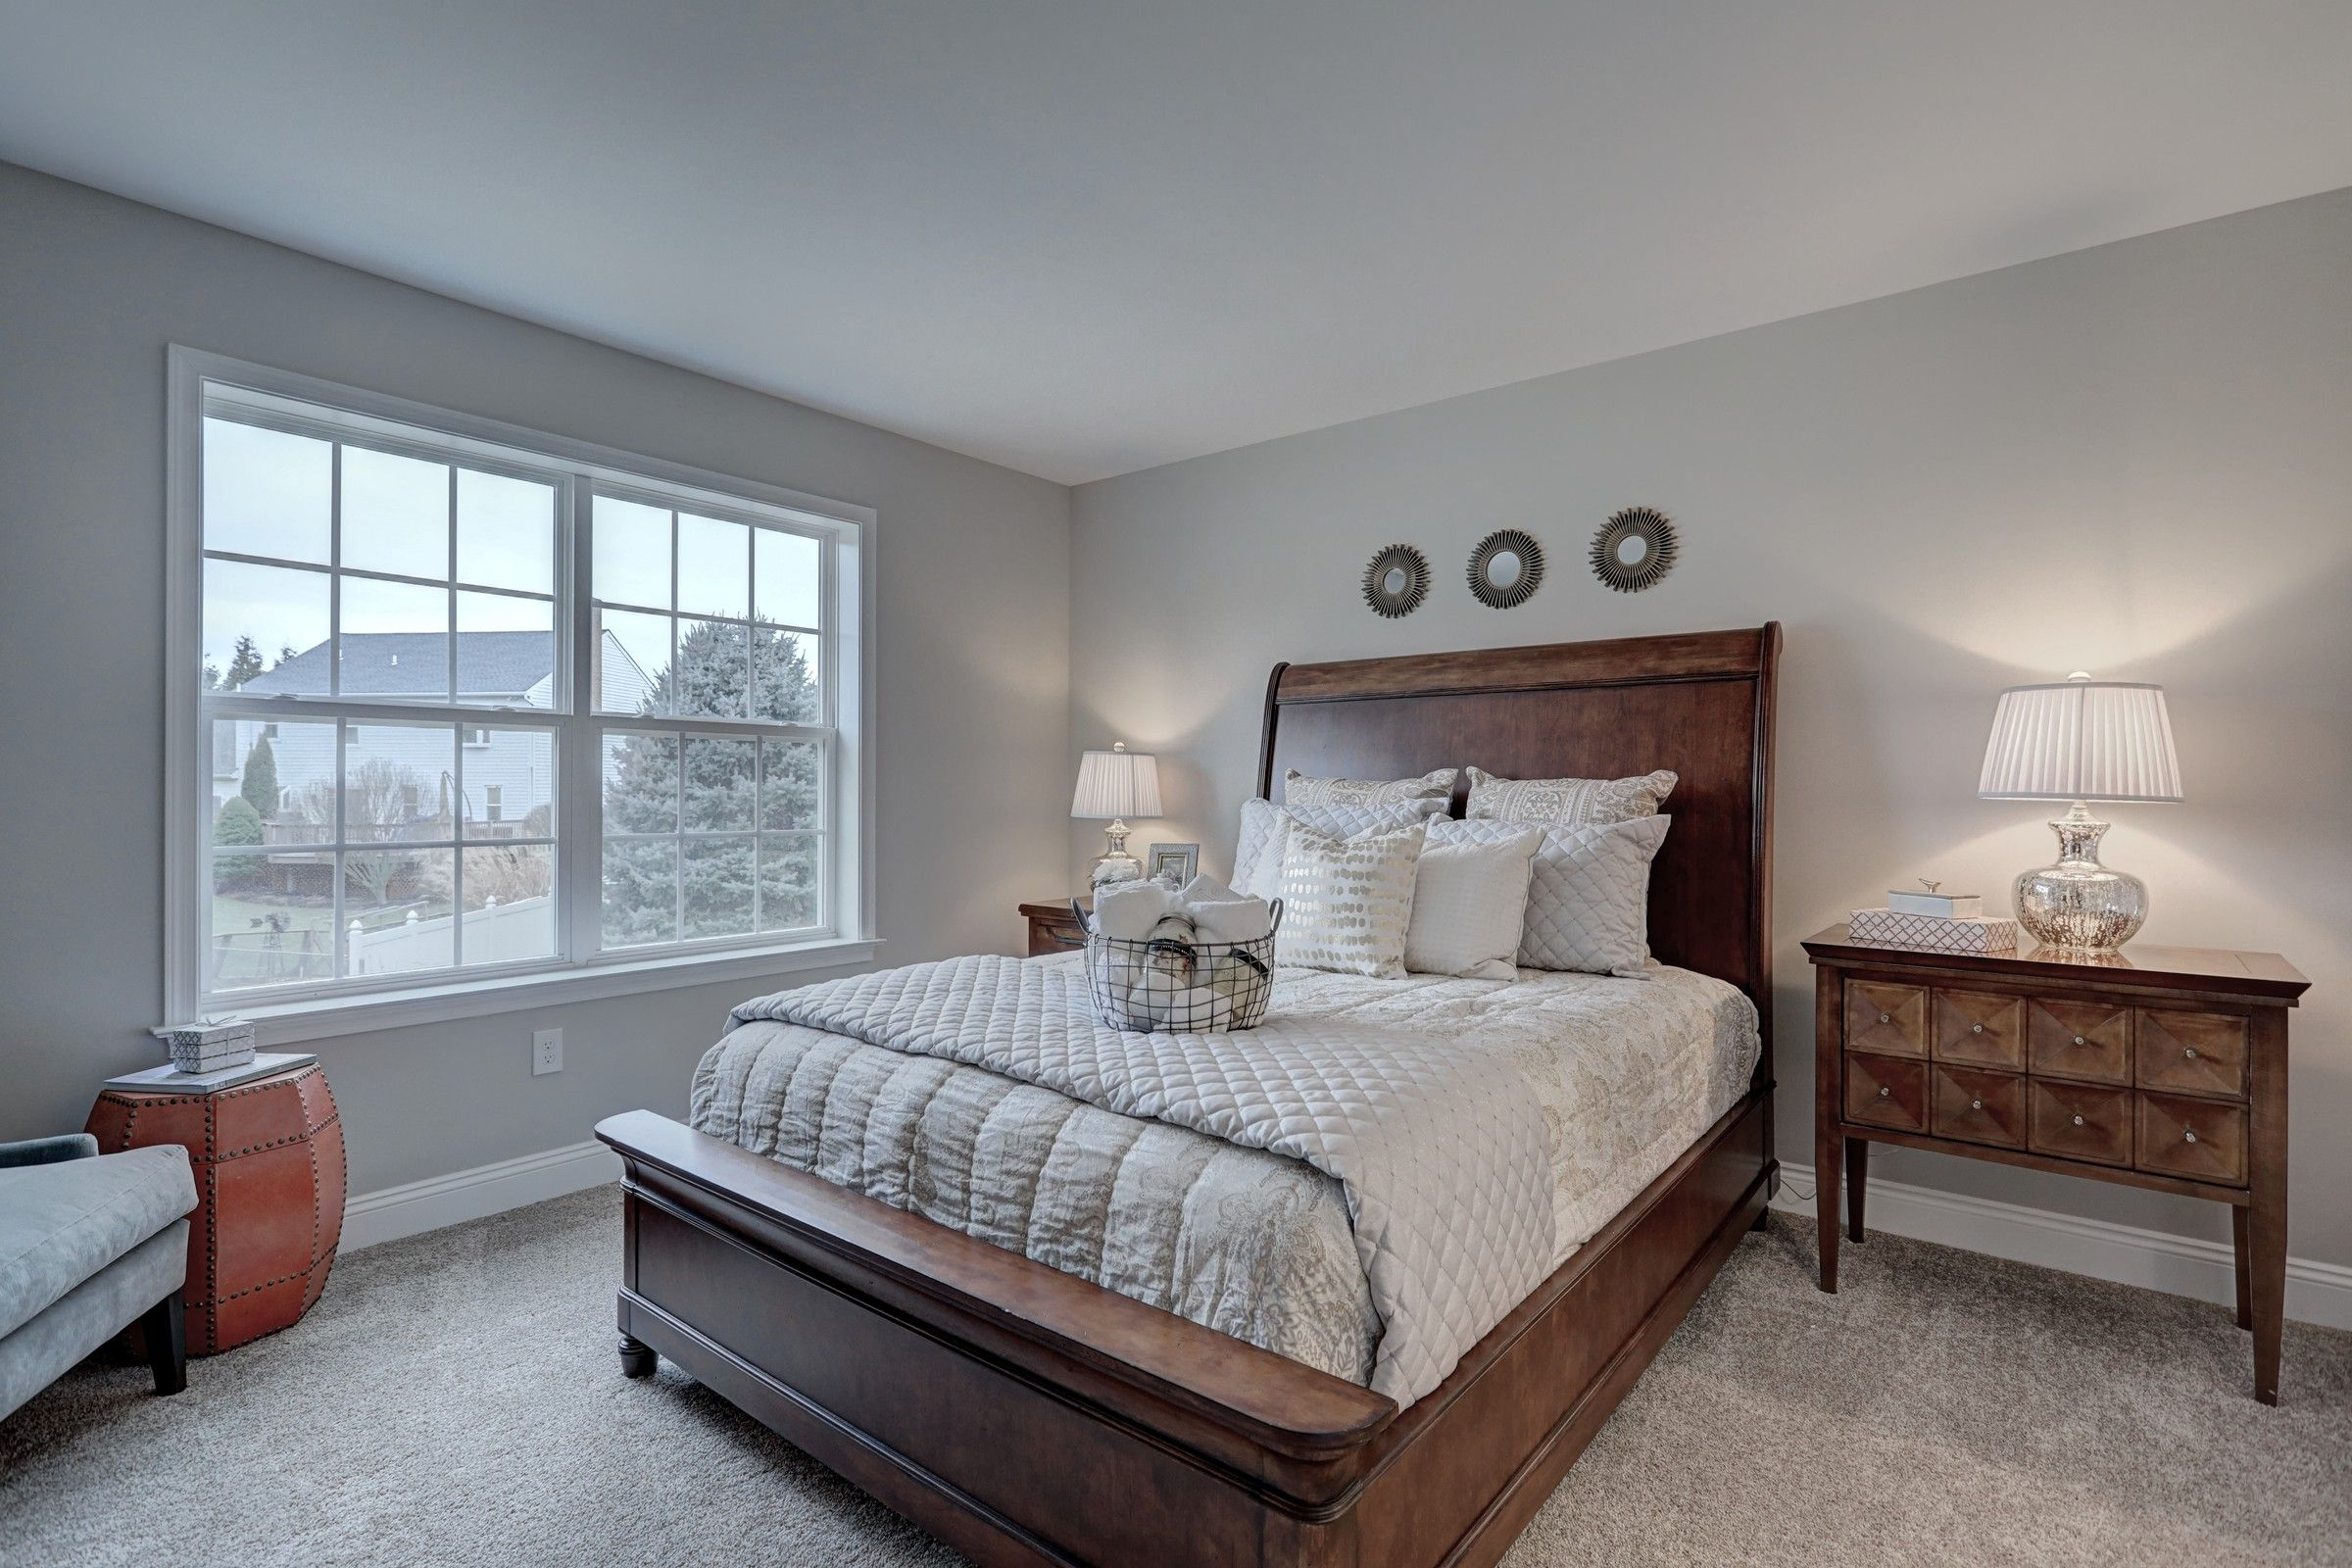 Bedroom featured in the Oxford Vintage By Keystone Custom Homes in Reading, PA